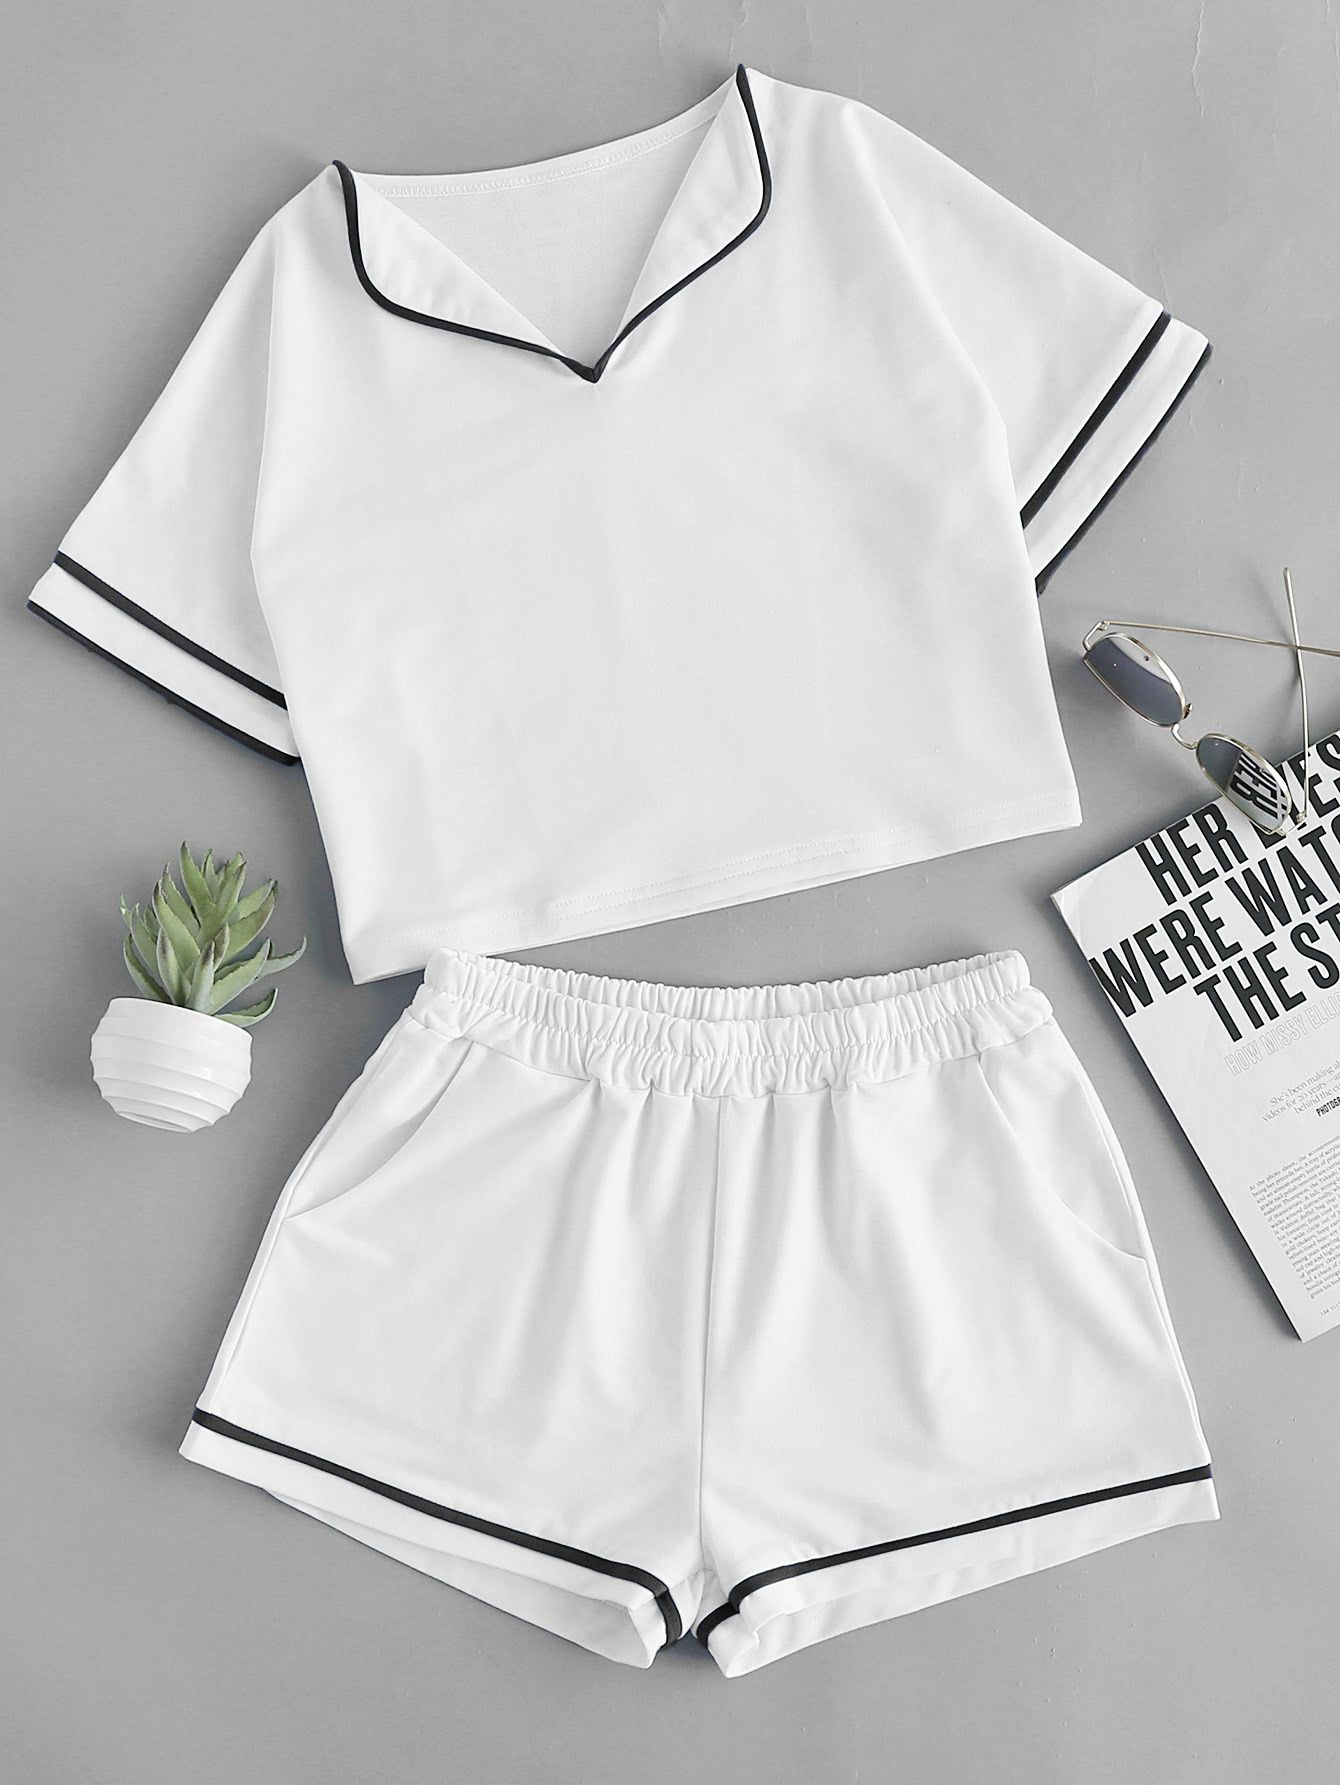 Foldover Neck Contrast Trim Top With Shorts